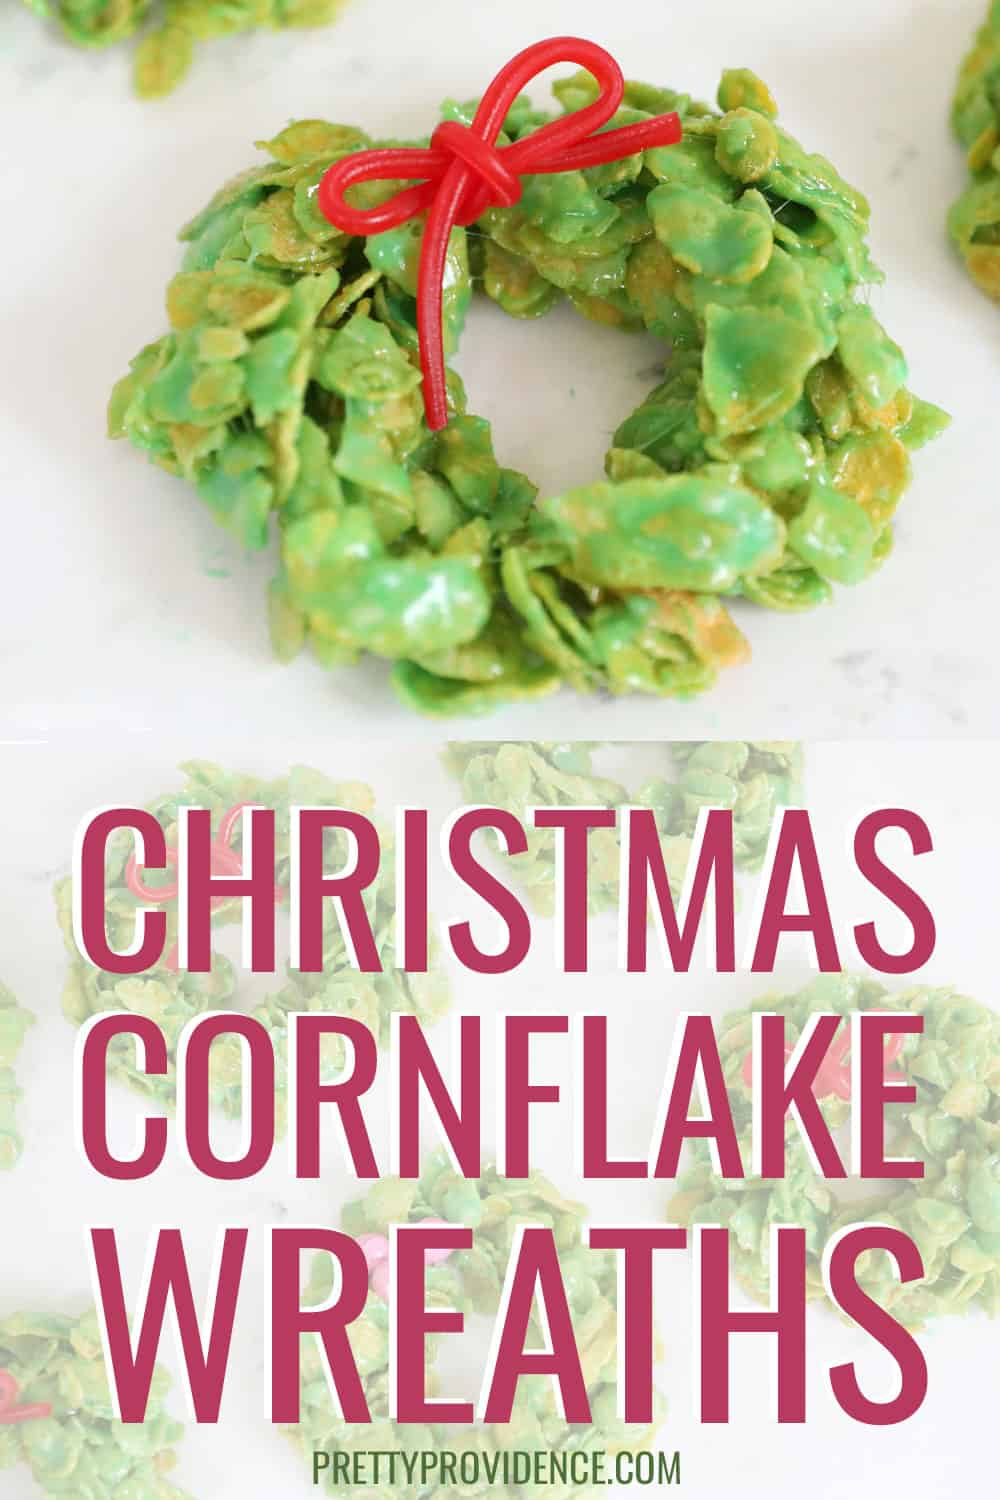 Christmas cornflake wreaths!